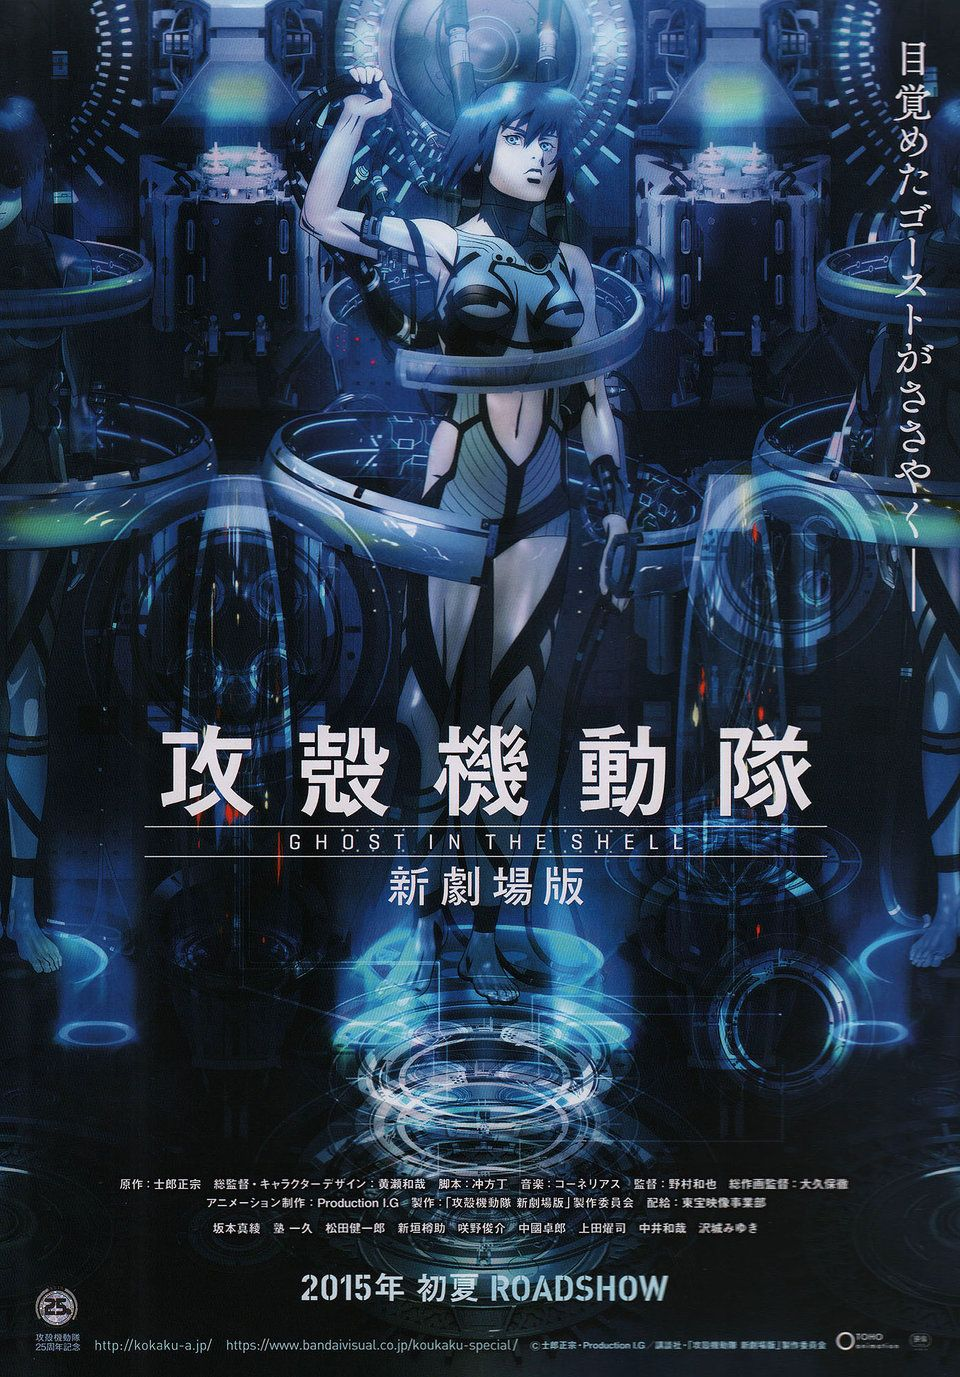 Ghost In The Shell 2015 Japanese B5 Chirashi Flyer Posteritati Movie Poster Gallery New York Ghost In The Shell Anime Ghost Anime Films